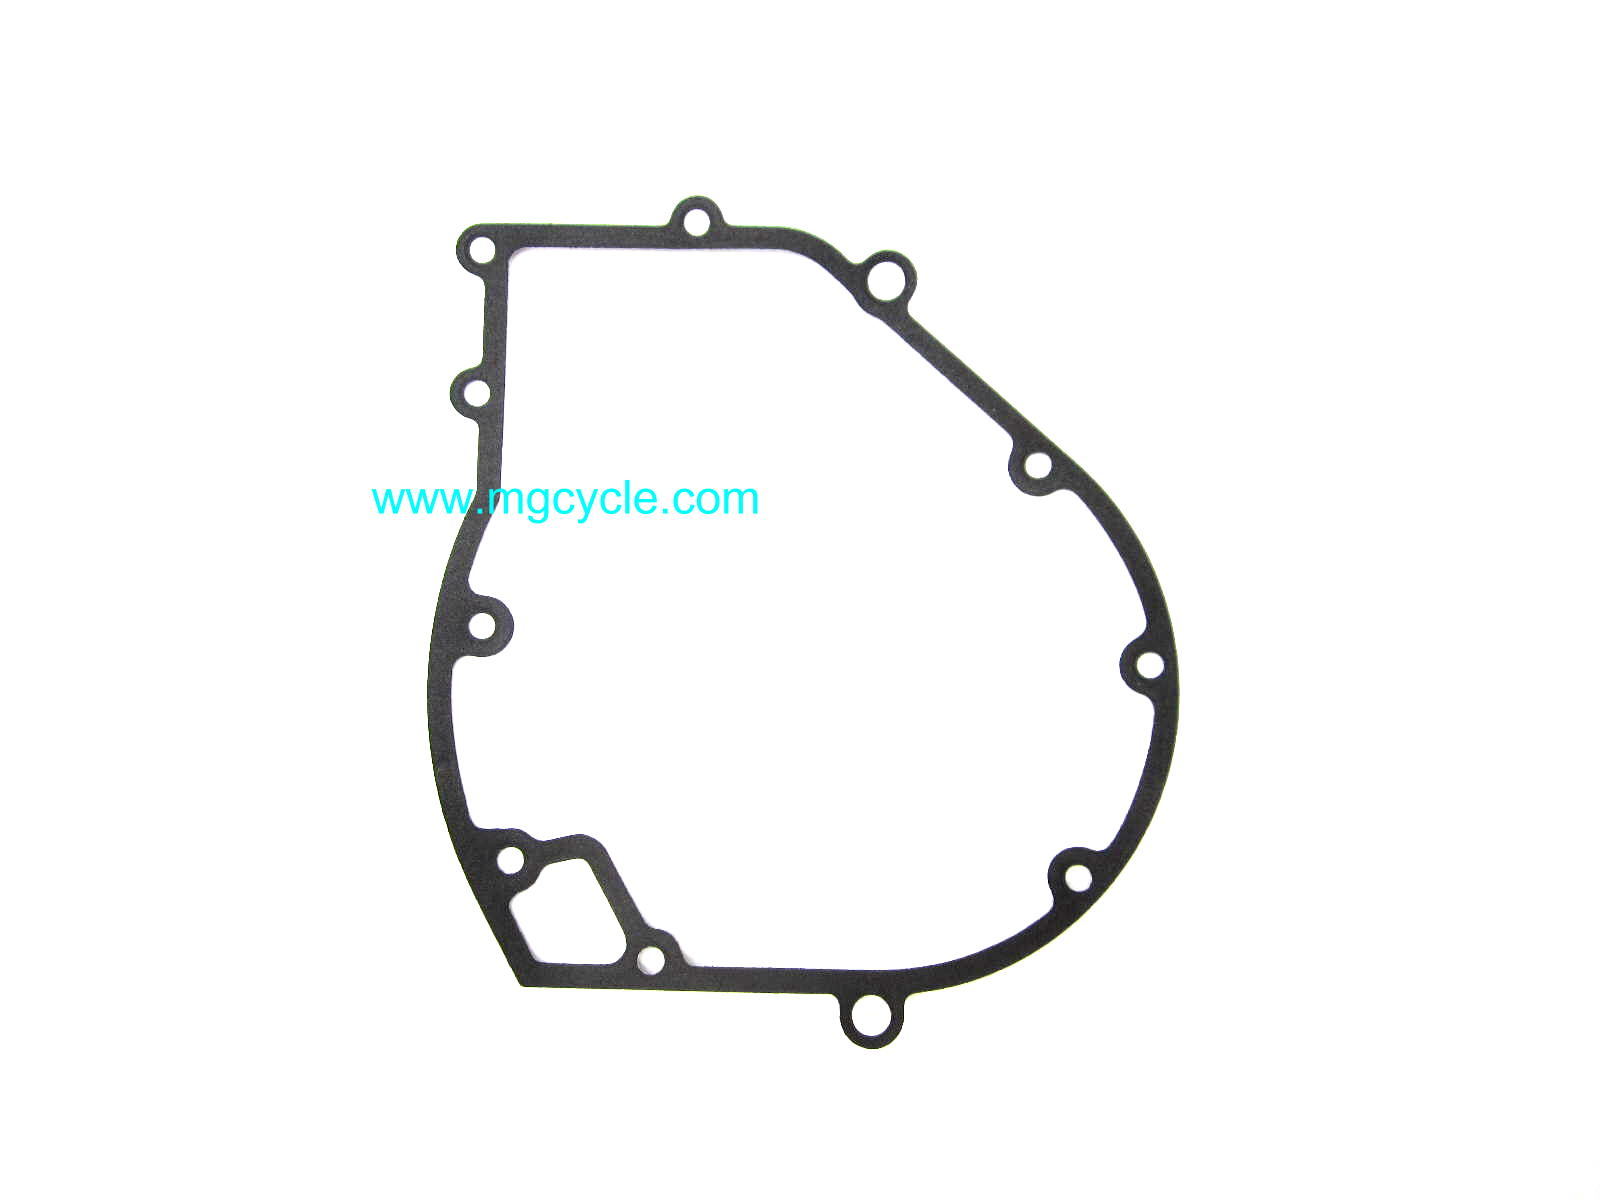 front transmission case gasket, small twin 350, 500, 650, 750